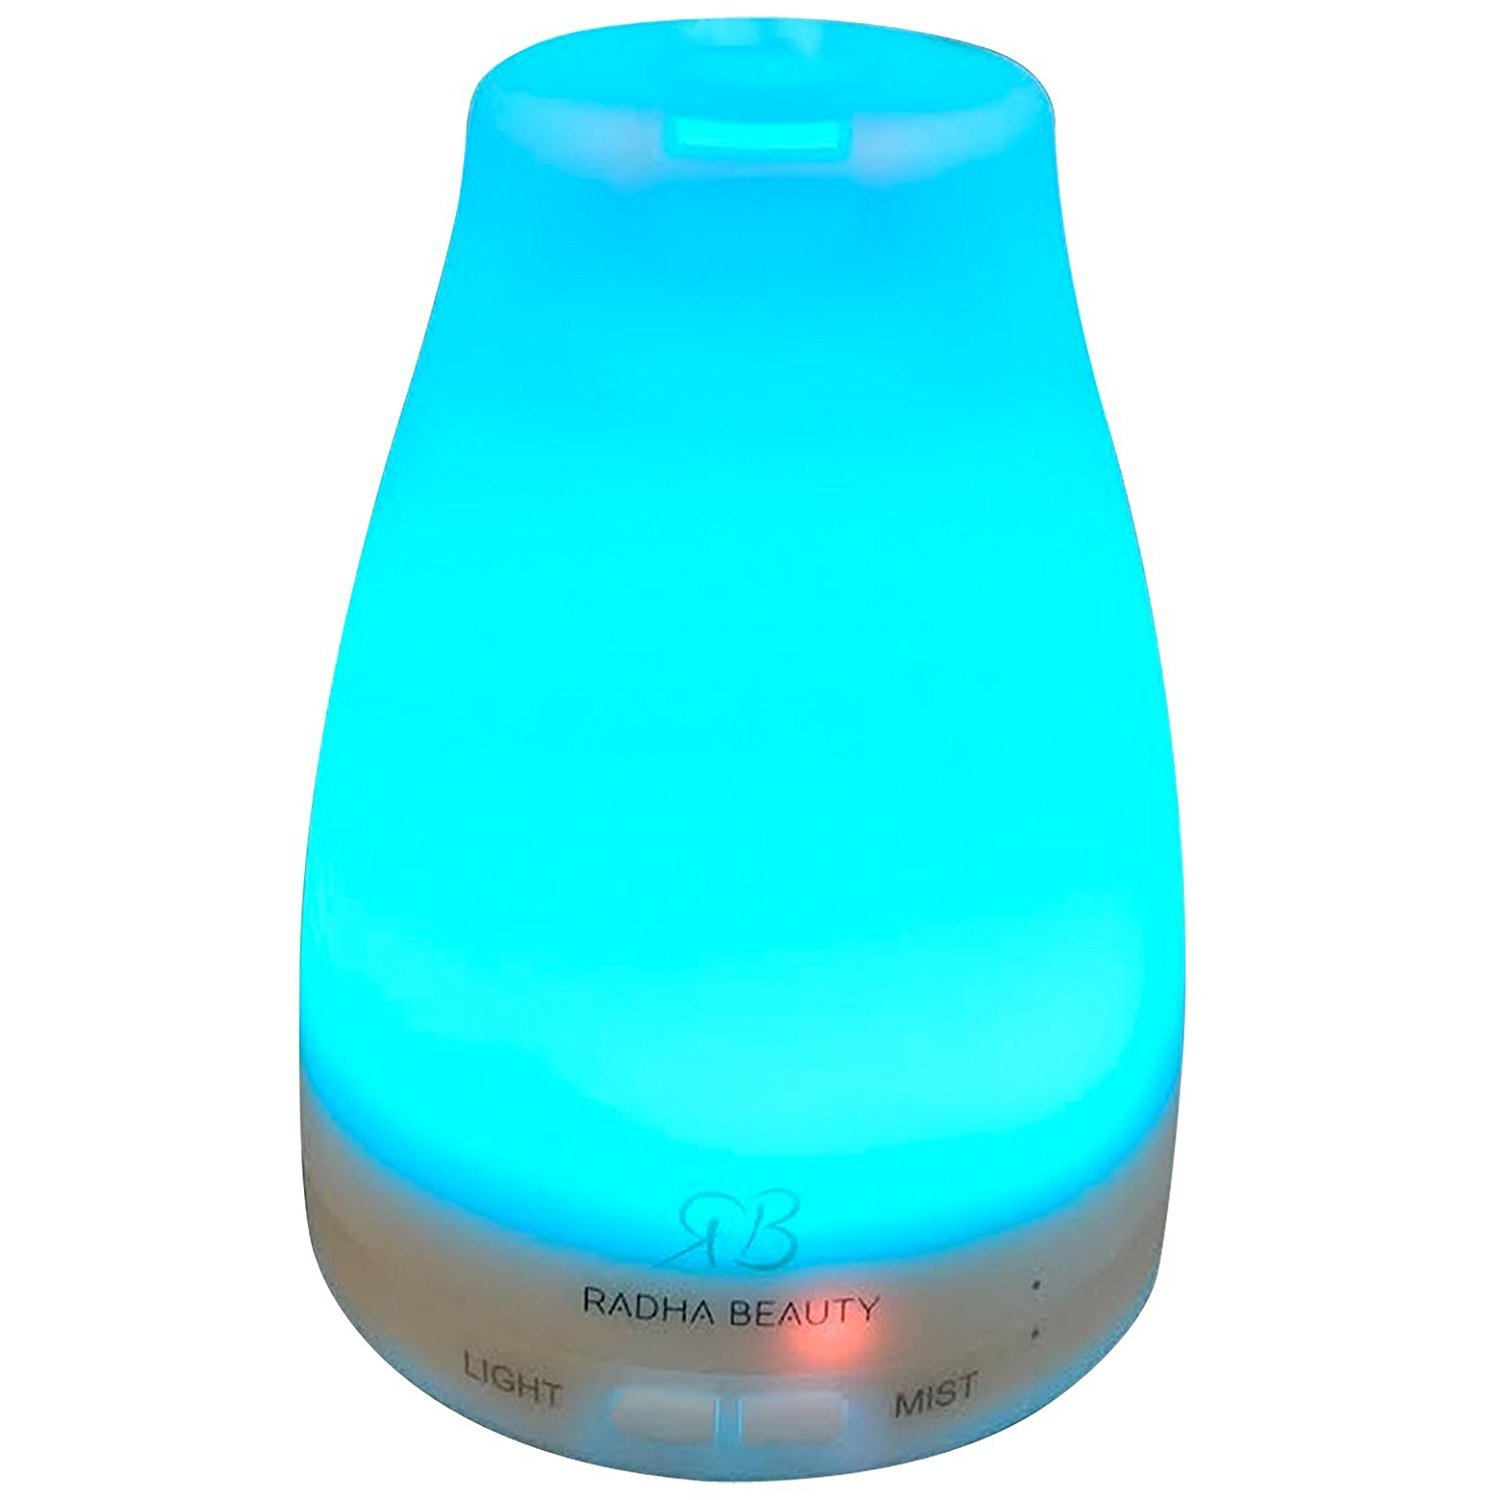 Essential Oil Diffuser 160 ml for Longer Mist - Cool Mist Aromatherapy with 7 Changing Colored LED Lights, Auto Shut-Off, and Adjustable Mist Modes by Radha Beauty